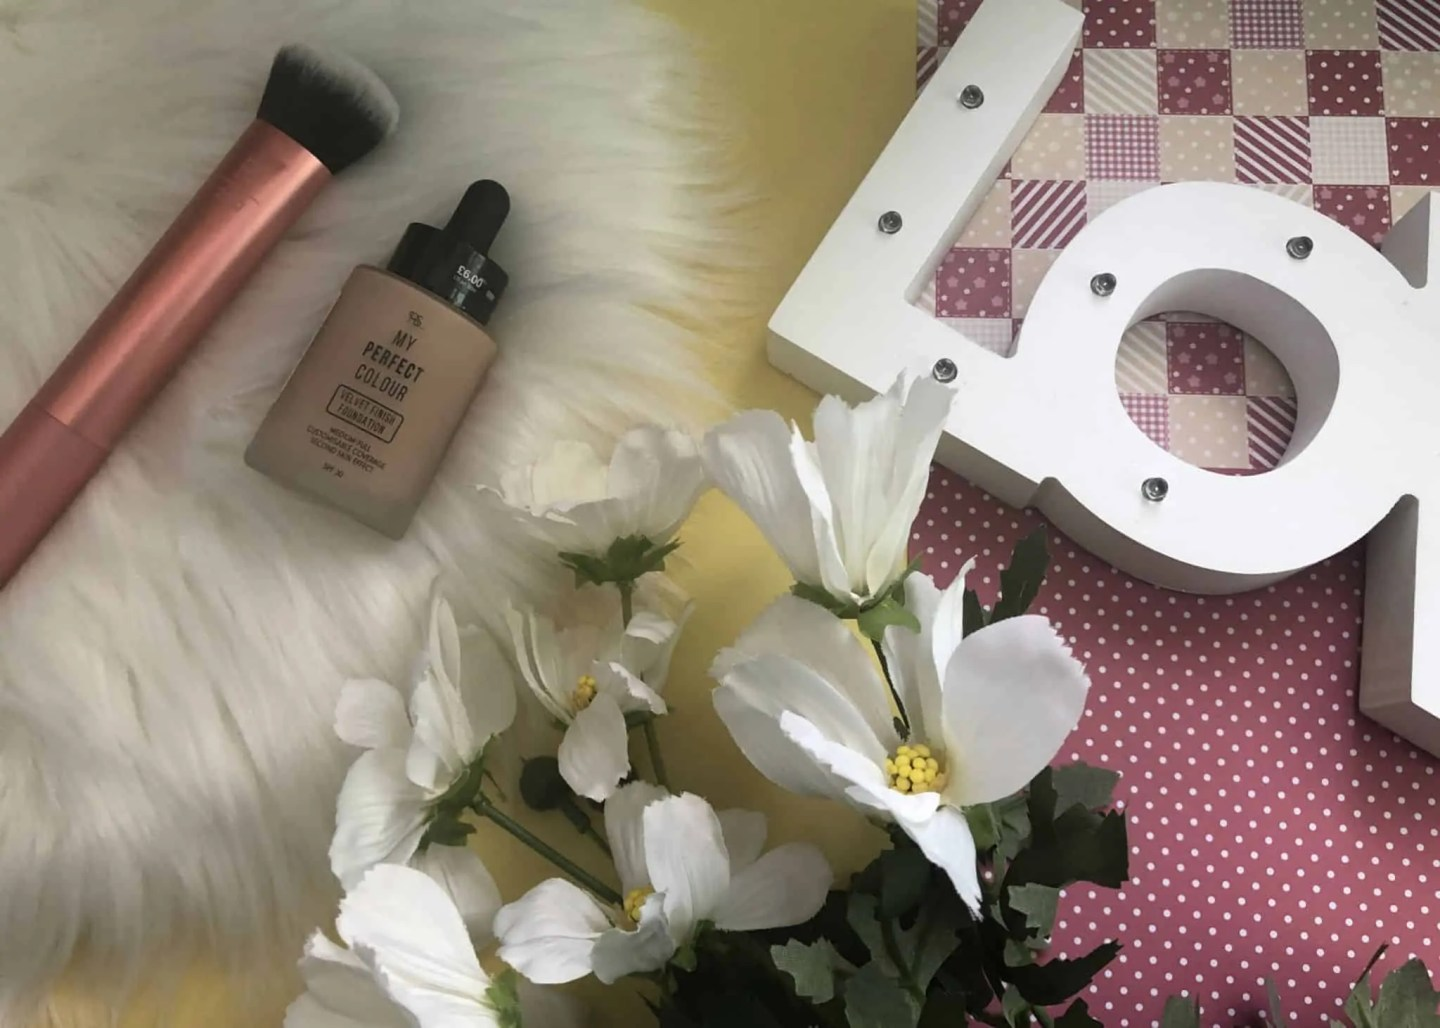 primark ps velvet finish foundation review